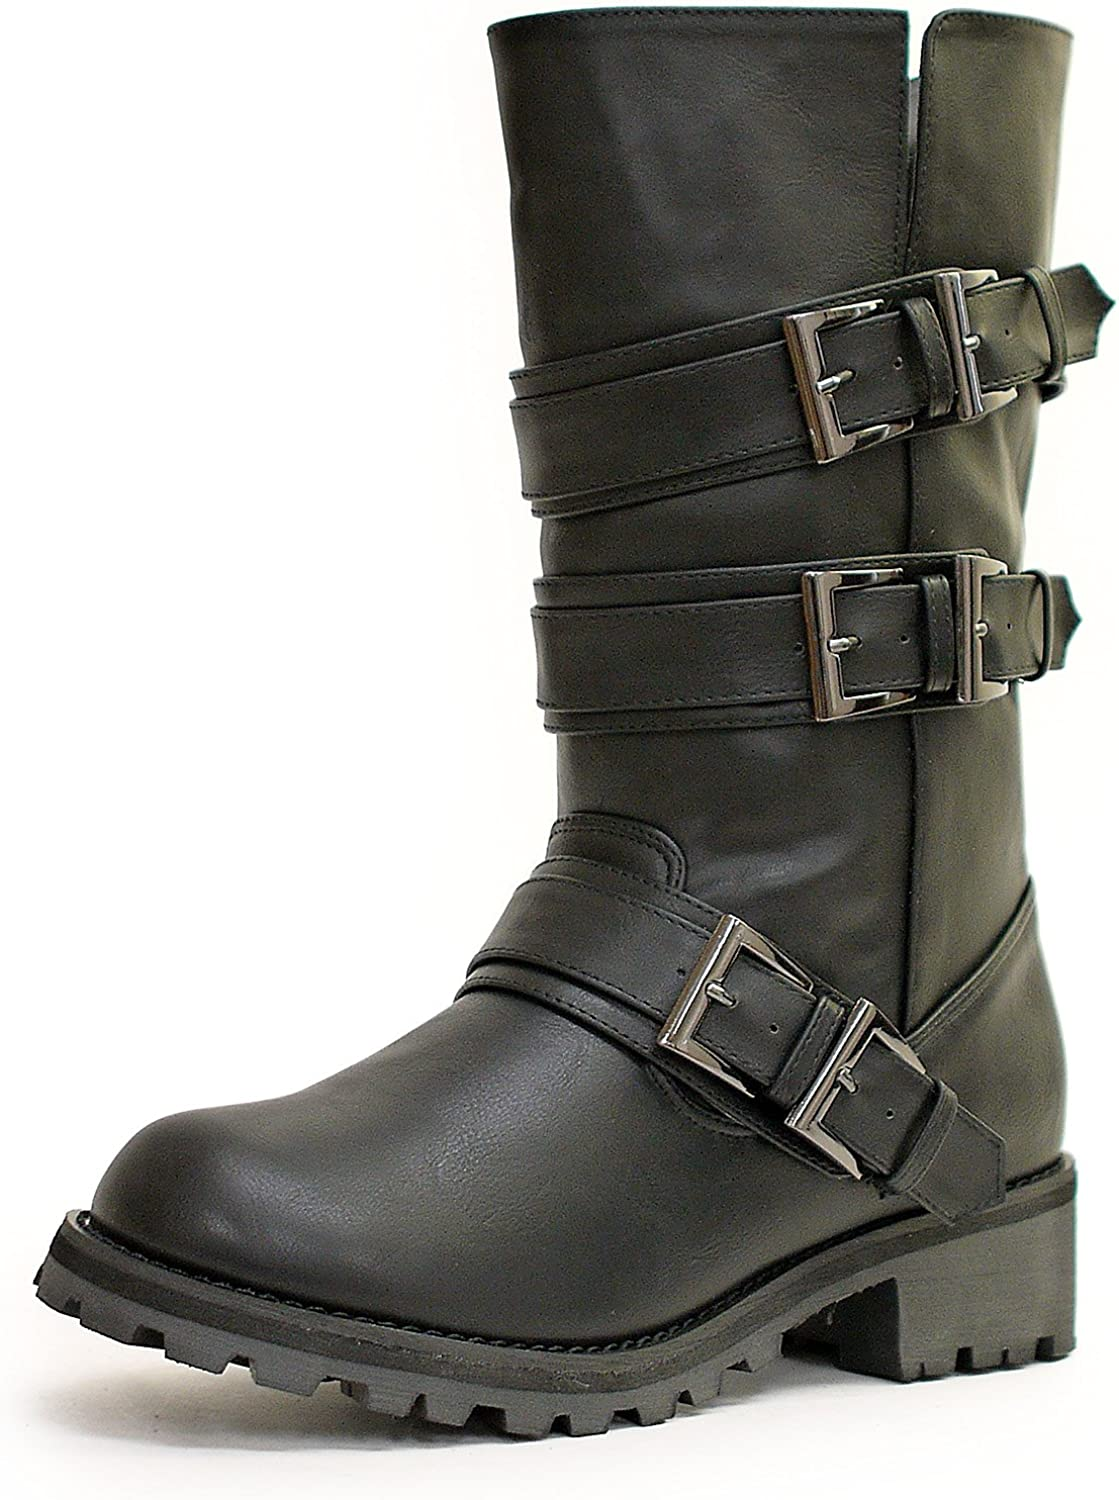 Antelope Military Boot Women's Middle Boot Engineer Boot